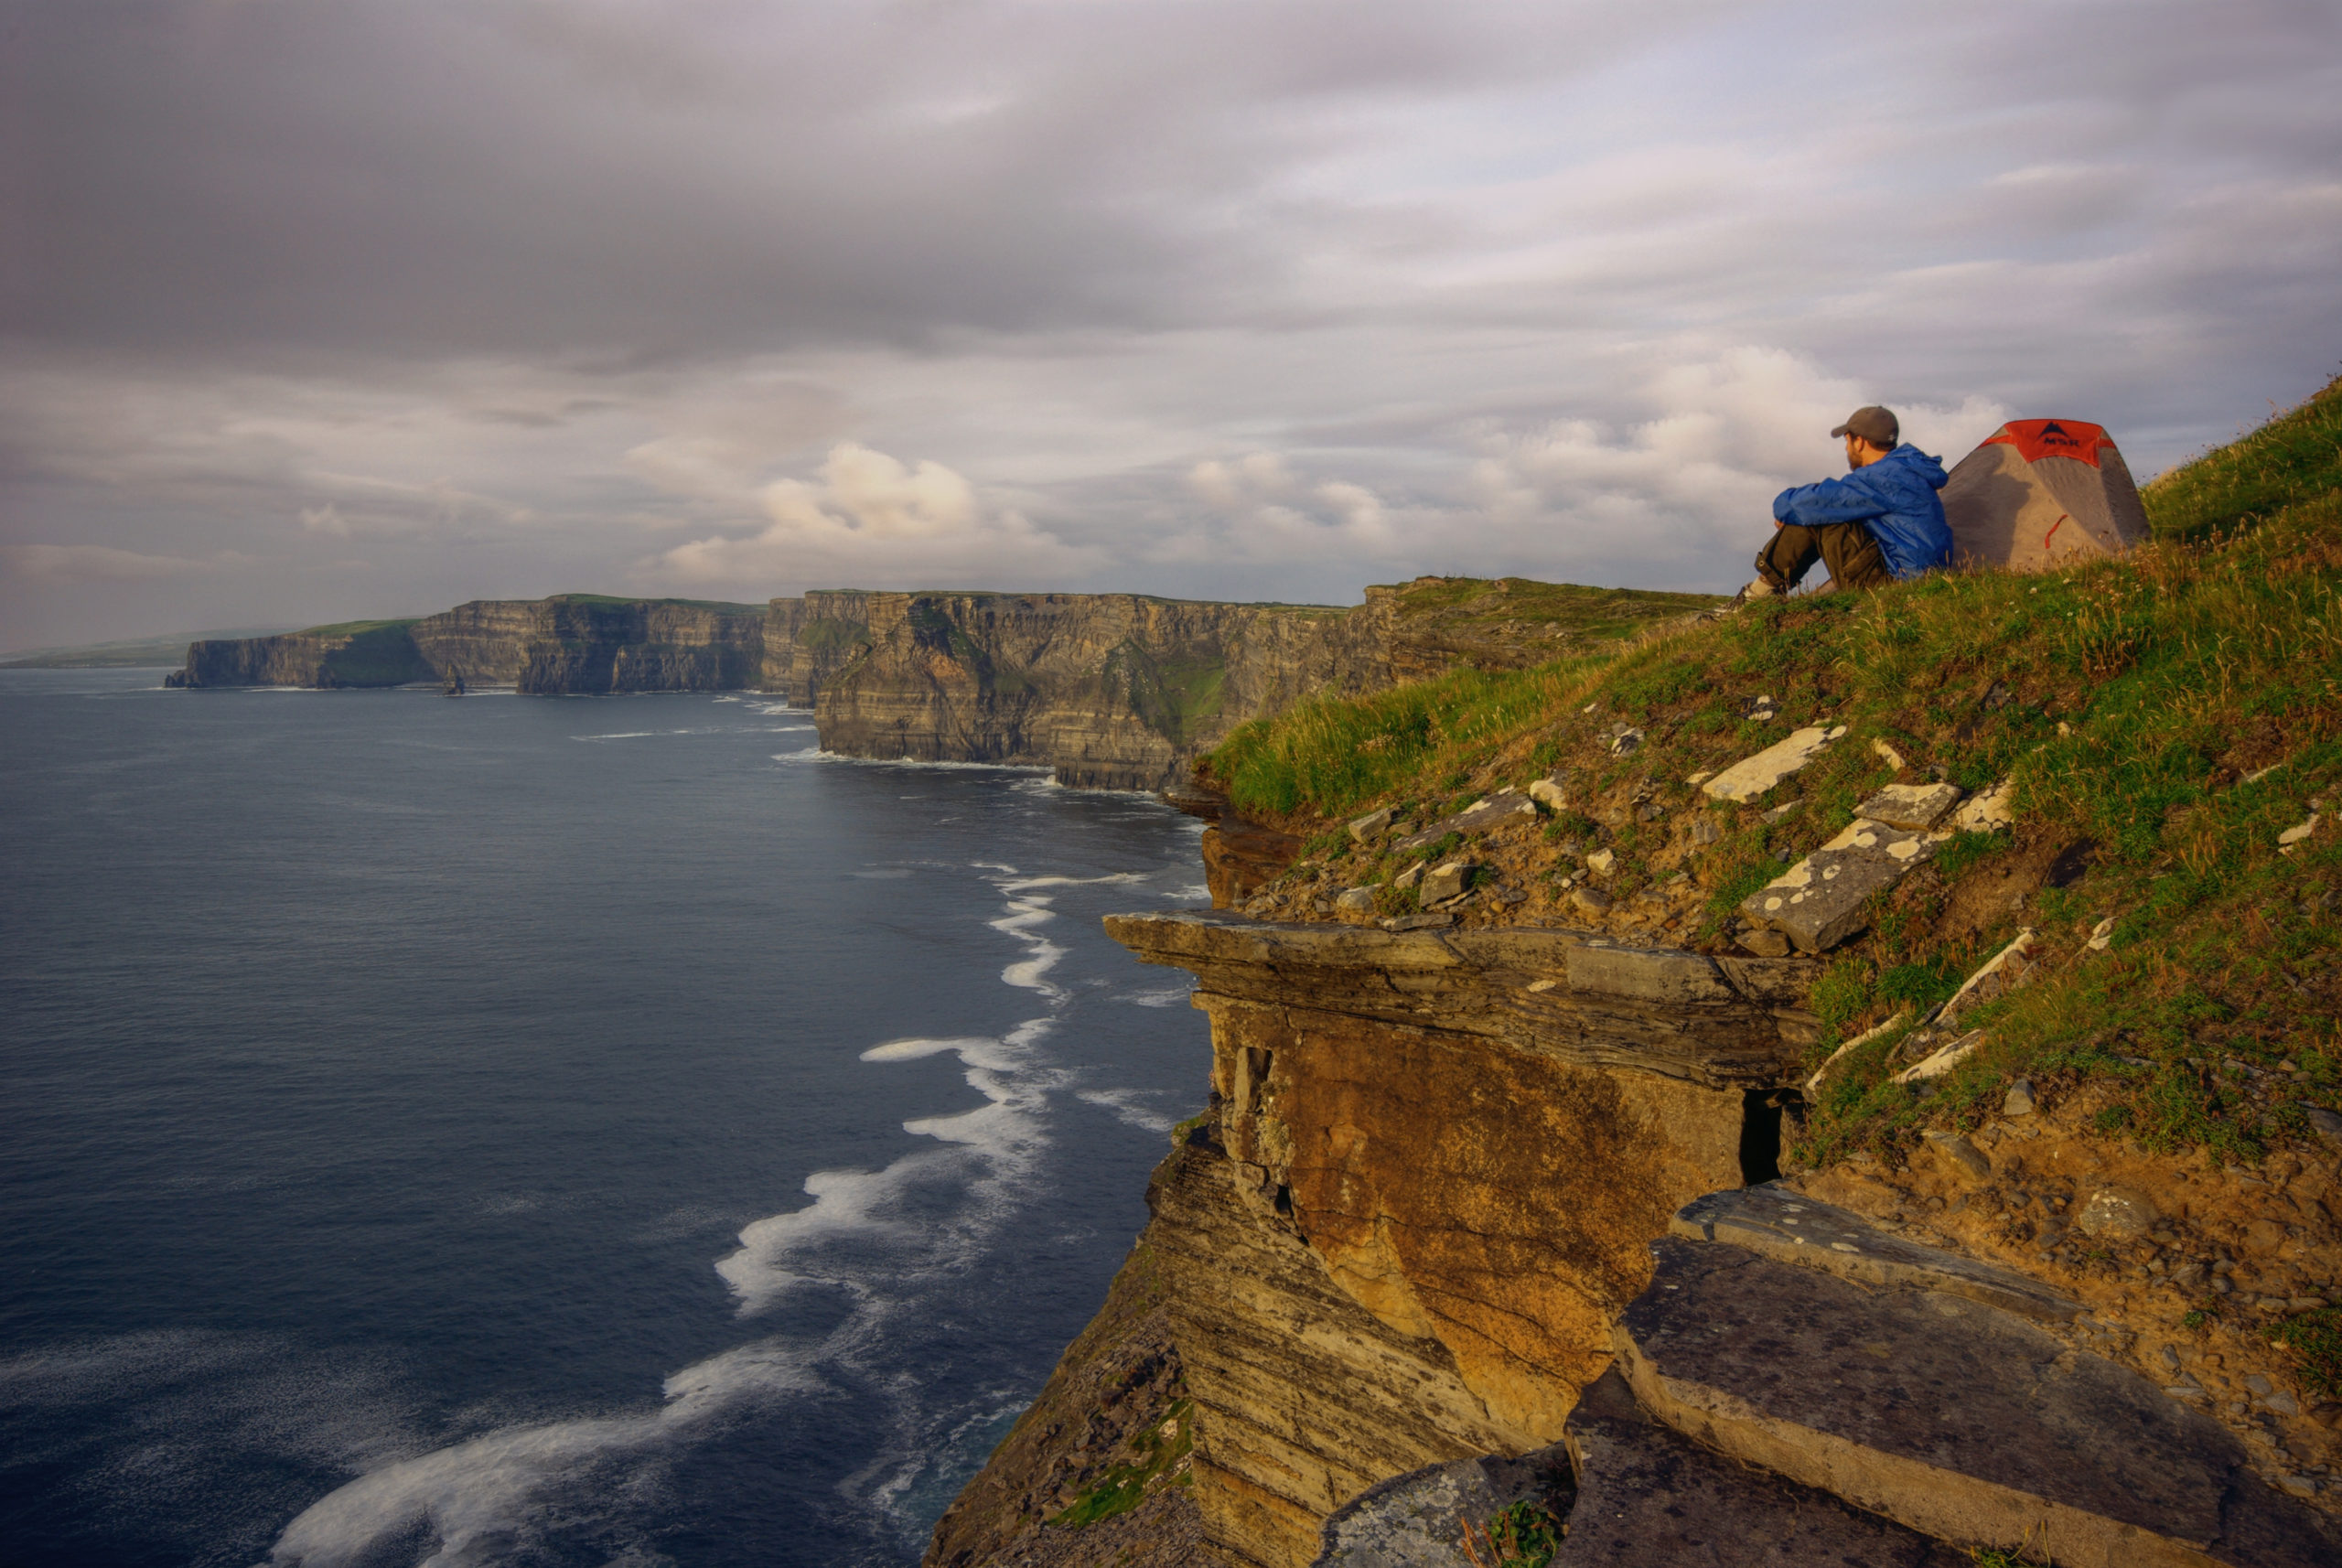 Camping on the Cliffs of Moher